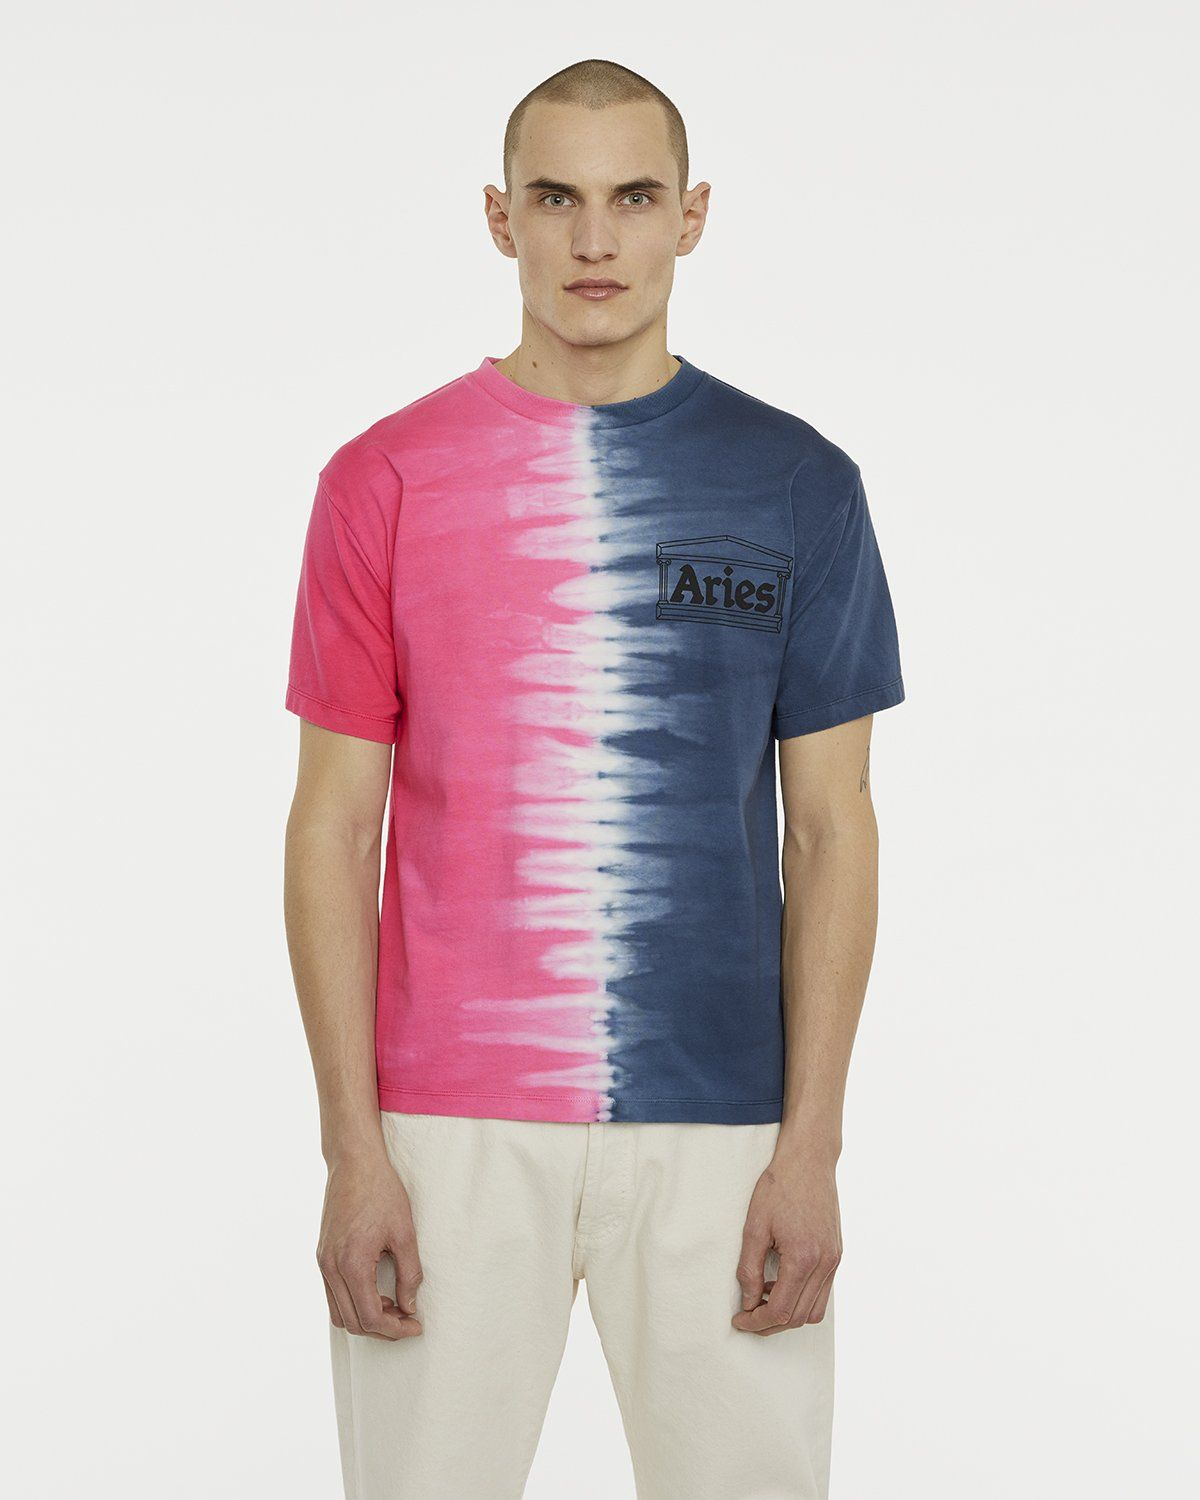 Aries - Tie Dye Half and Half Tee Blue/Fuchsia - Image 3